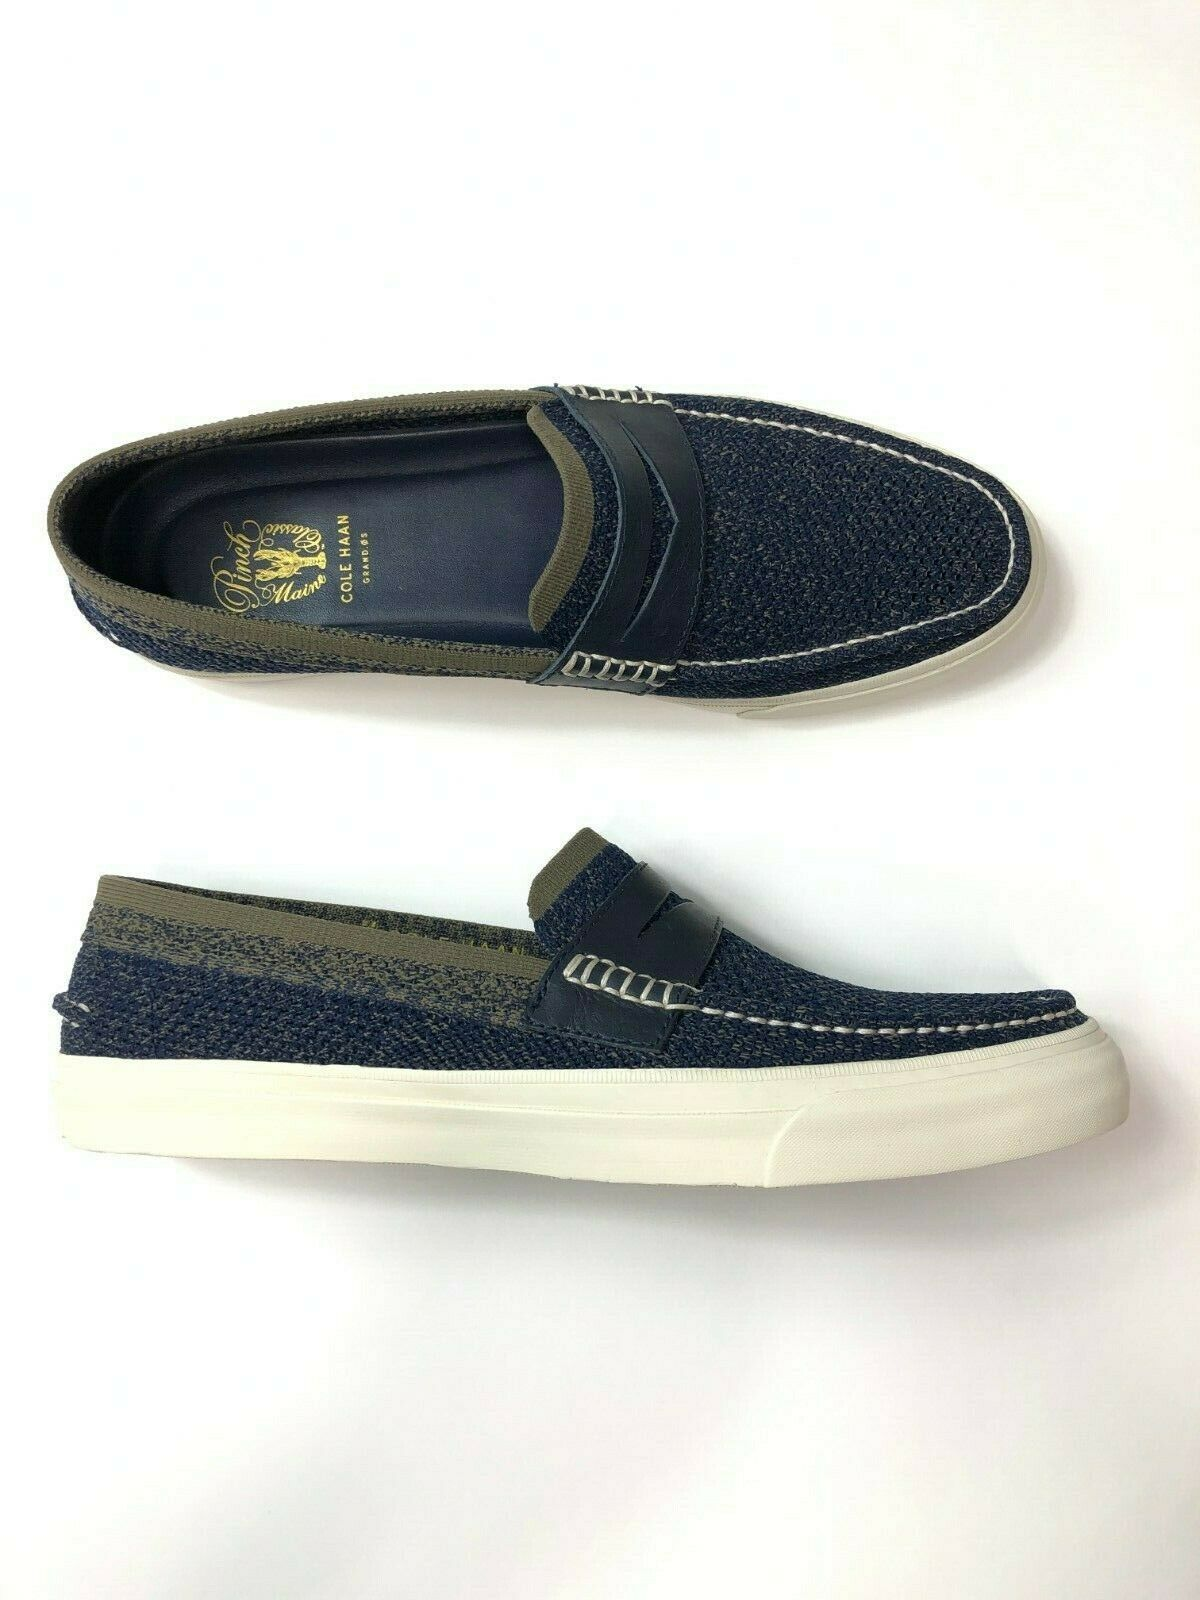 Cole Haan Pinch Weekends LX Stitchlite Loafer Navy Morel C28008 Mens Size 11.5